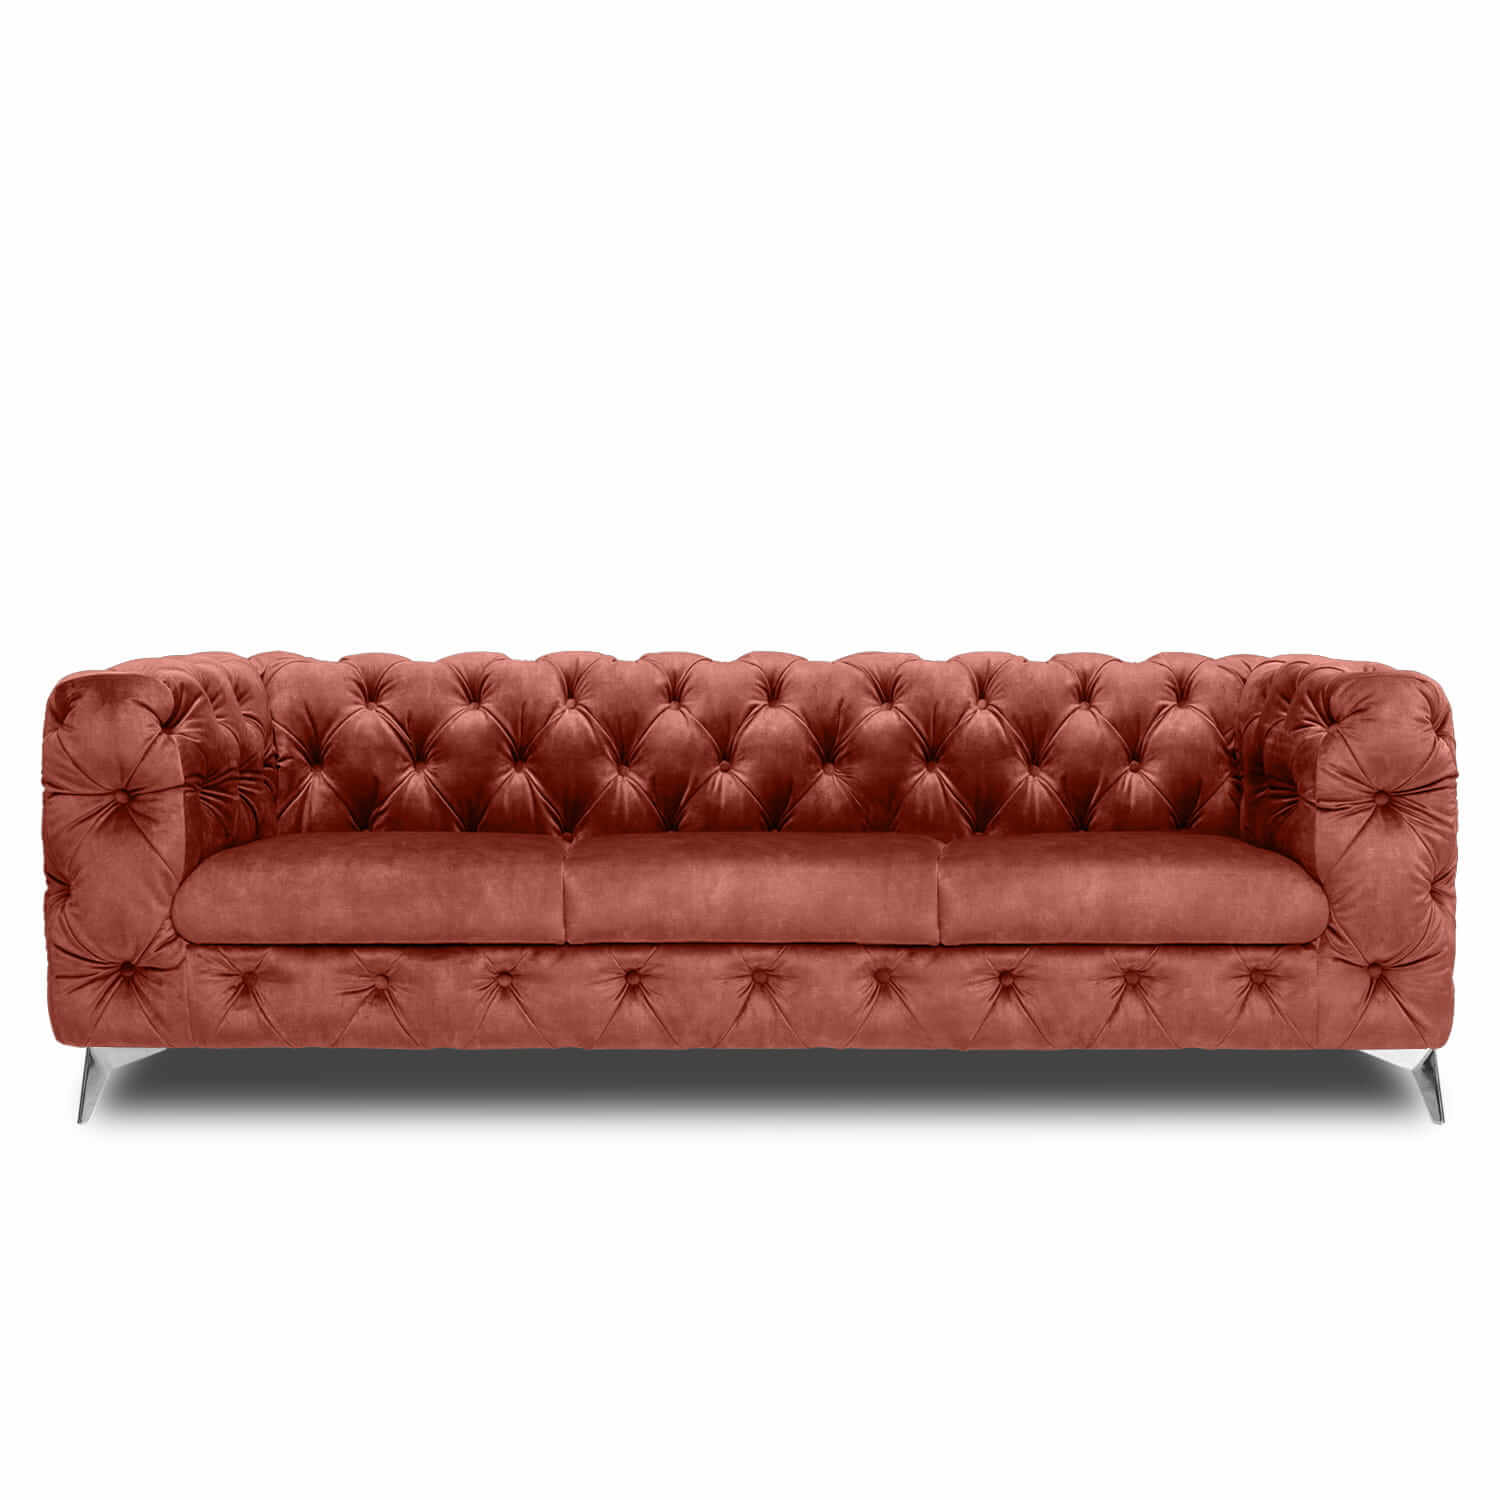 https://www.excluzive.se/wp-content/uploads/2020/10/Chesterfield-Martens-3-sits-Coral-1.jpg